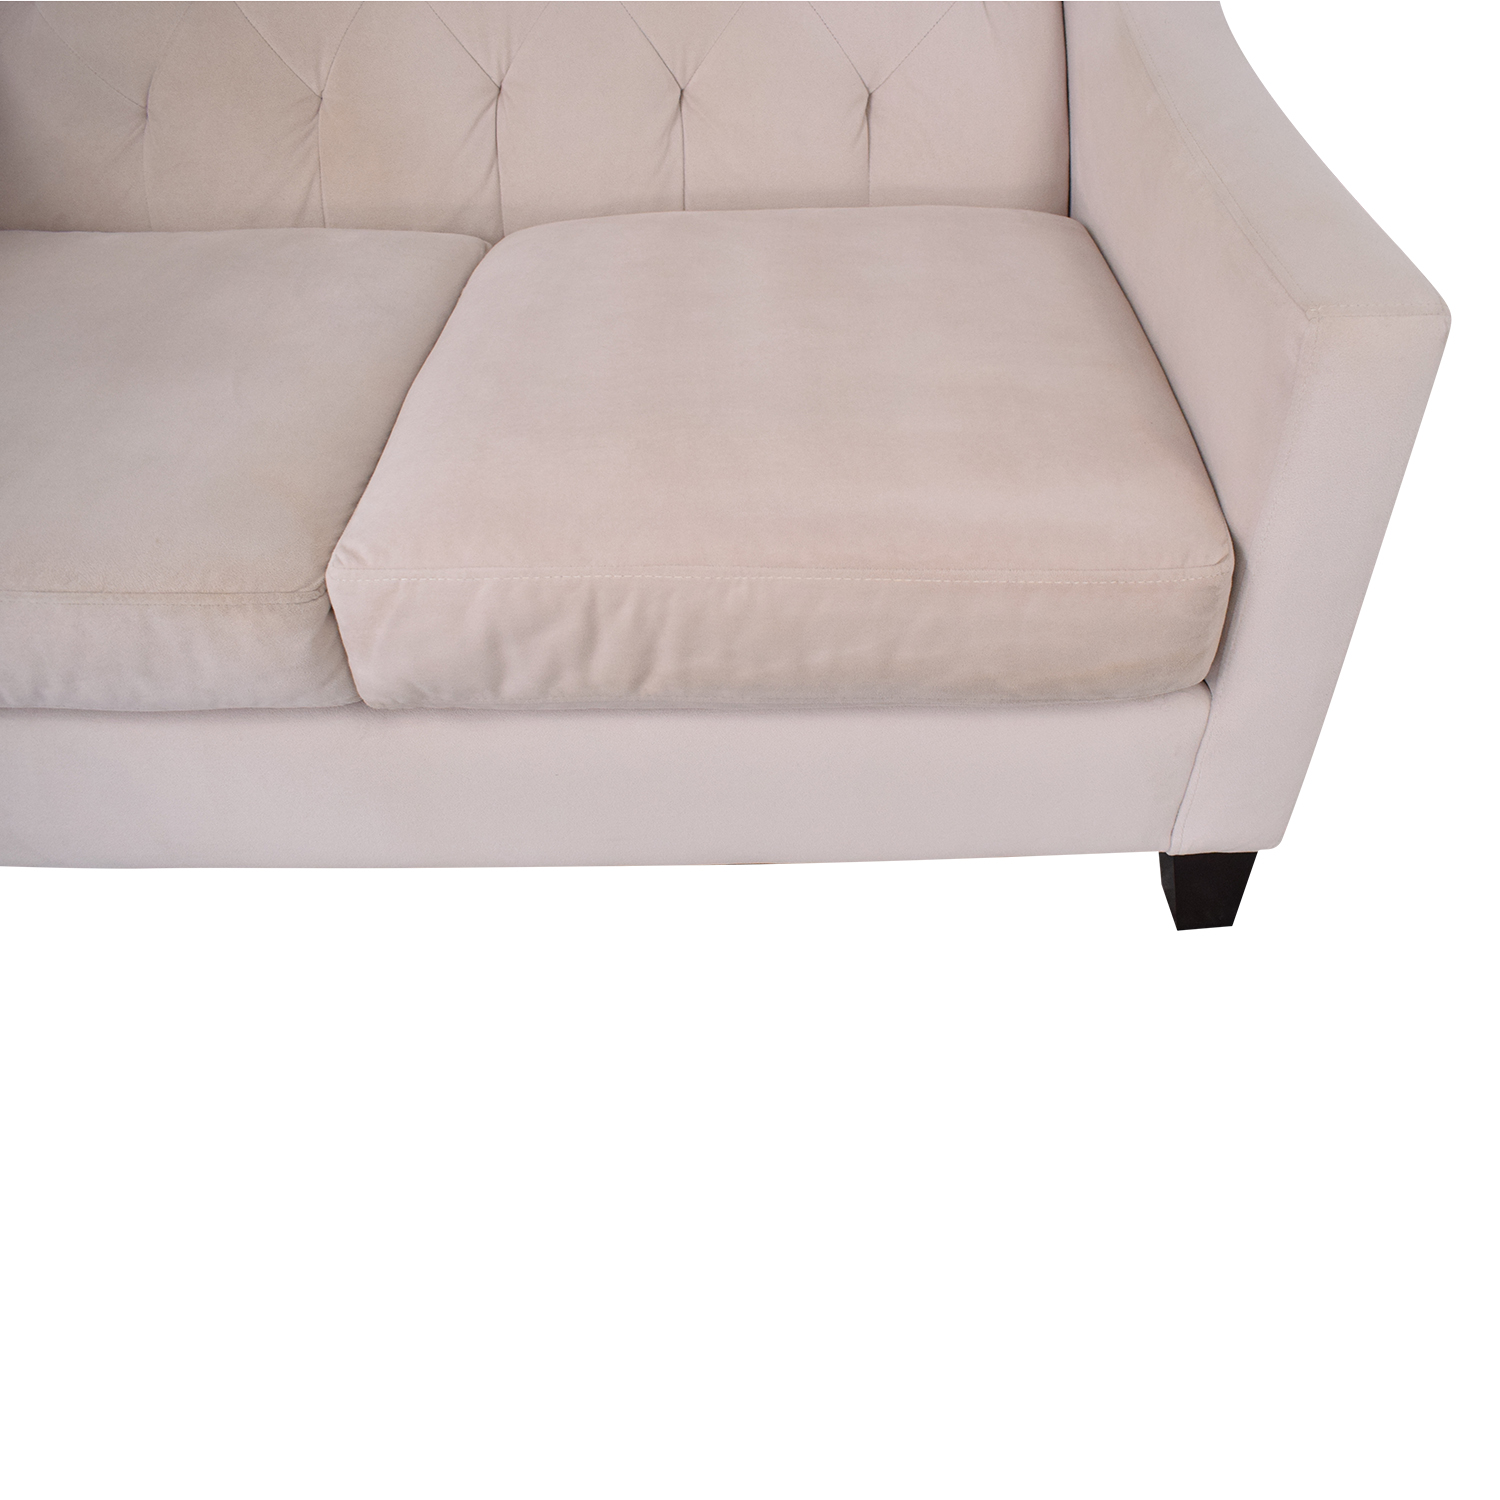 Macy's Macy's Cream Loveseat coupon